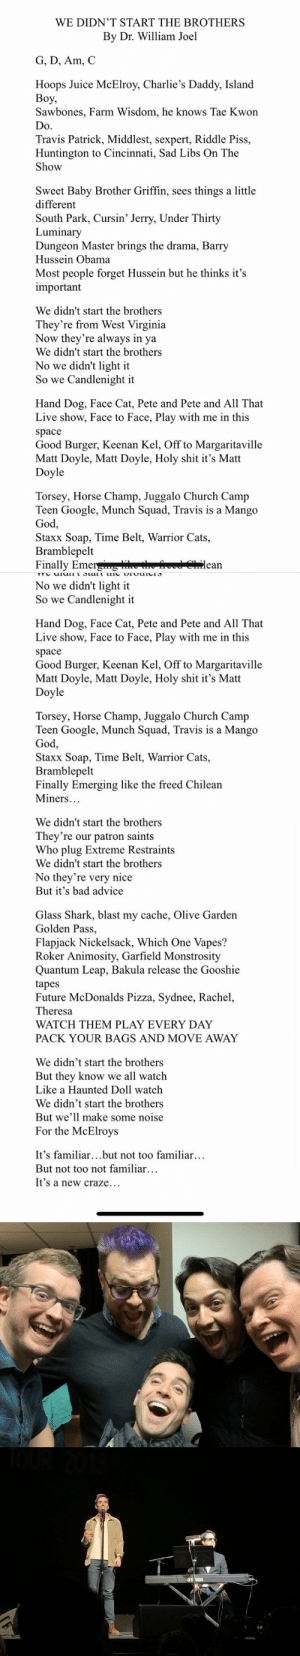 Saturday Night @MBMBaM— Listen guys. Every two years I moonlight as a Billy Joel Weird Al but only with very specific lyrics for podcasts I like. Here are the lyrics. https://t.co/s2tQIKpd5U: WE DIDN'T START THE BROTHERS  By Dr. William Joel  G, D, Am, C  Hoops Juice McElroy, Charlie's Daddy, Island  Воу,  Sawbones, Farm Wisdom, he knows Tae Kwon  Do  Travis Patrick, Middlest, sexpert, Riddle Piss,  Huntington to Cincinnati, Sad Libs On The  Show  Sweet Baby Brother Griffin, sees things a little  different  South Park, Cursin' Jerry, Under Thirty  Luminary  Dungeon Master brings the drama, Barry  Hussein Obama  Most people forget Hussein but he thinks it's  important  We didn't start the brothers  They're from West Virginia  Now they're always in  ya  We didn't start the brothers  No we didn't light it  So we Candlenight it  Hand Dog, Face Cat, Pete and Pete and All That  Live show, Face to Face, Play with me in this  space  Good Burger, Keenan Kel, Off to Margaritaville  Matt Doyle, Matt Doyle, Holy shit it's Matt  Doyle  Torsey, Horse Champ, Juggalo Church Camp  Teen Google, Munch Squad, Travis is a Mango  God,  Staxx Soap, Time Belt, Warrior Cats,  Bramblepelt  Finally Emerg e he  lean   No we didn't light it  So we Candlenight it  Hand Dog, Face Cat, Pete and Pete and All That  Live show, Face to Face, Play with me in this  space  Good Burger, Keenan Kel, Off to Margaritaville  Matt Doyle, Matt Doyle, Holy shit it's Matt  Doyle  Torsey, Horse Champ, Juggalo Church Camp  Teen Google, Munch Squad, Travis is a Mango  God,  Staxx Soap, Time Belt, Warrior Cats,  Bramblepelt  Finally Emerging like the freed Chilean  Miners...  We didn't start the brothers  They're our patron saints  Who plug Extreme Restraints  We didn't start the brothers  No they're very nice  But it's bad advice  Glass Shark, blast my cache, Olive Garden  Golden Pass,  Flapjack Nickelsack, Which One Vapes?  Roker Animosity, Garfield Monstrosity  Quantum Leap, Bakula release the Gooshie  tapes  Future McDonalds Pizza, Sydnee, Rachel,  Theresa  WATCH THEM PLAY EVERY DAY  PACK YOUR BAGS AND MOVE AWAY  We didn't start the brothers  But they know we all watch  Like a Haunted Doll watch  We didn't start the brothers  But we'll make some noise  For the McElroys  It's familiar...but not too familiar...  But not too not familiar...  It's a new craze...   YMAHA Saturday Night @MBMBaM— Listen guys. Every two years I moonlight as a Billy Joel Weird Al but only with very specific lyrics for podcasts I like. Here are the lyrics. https://t.co/s2tQIKpd5U